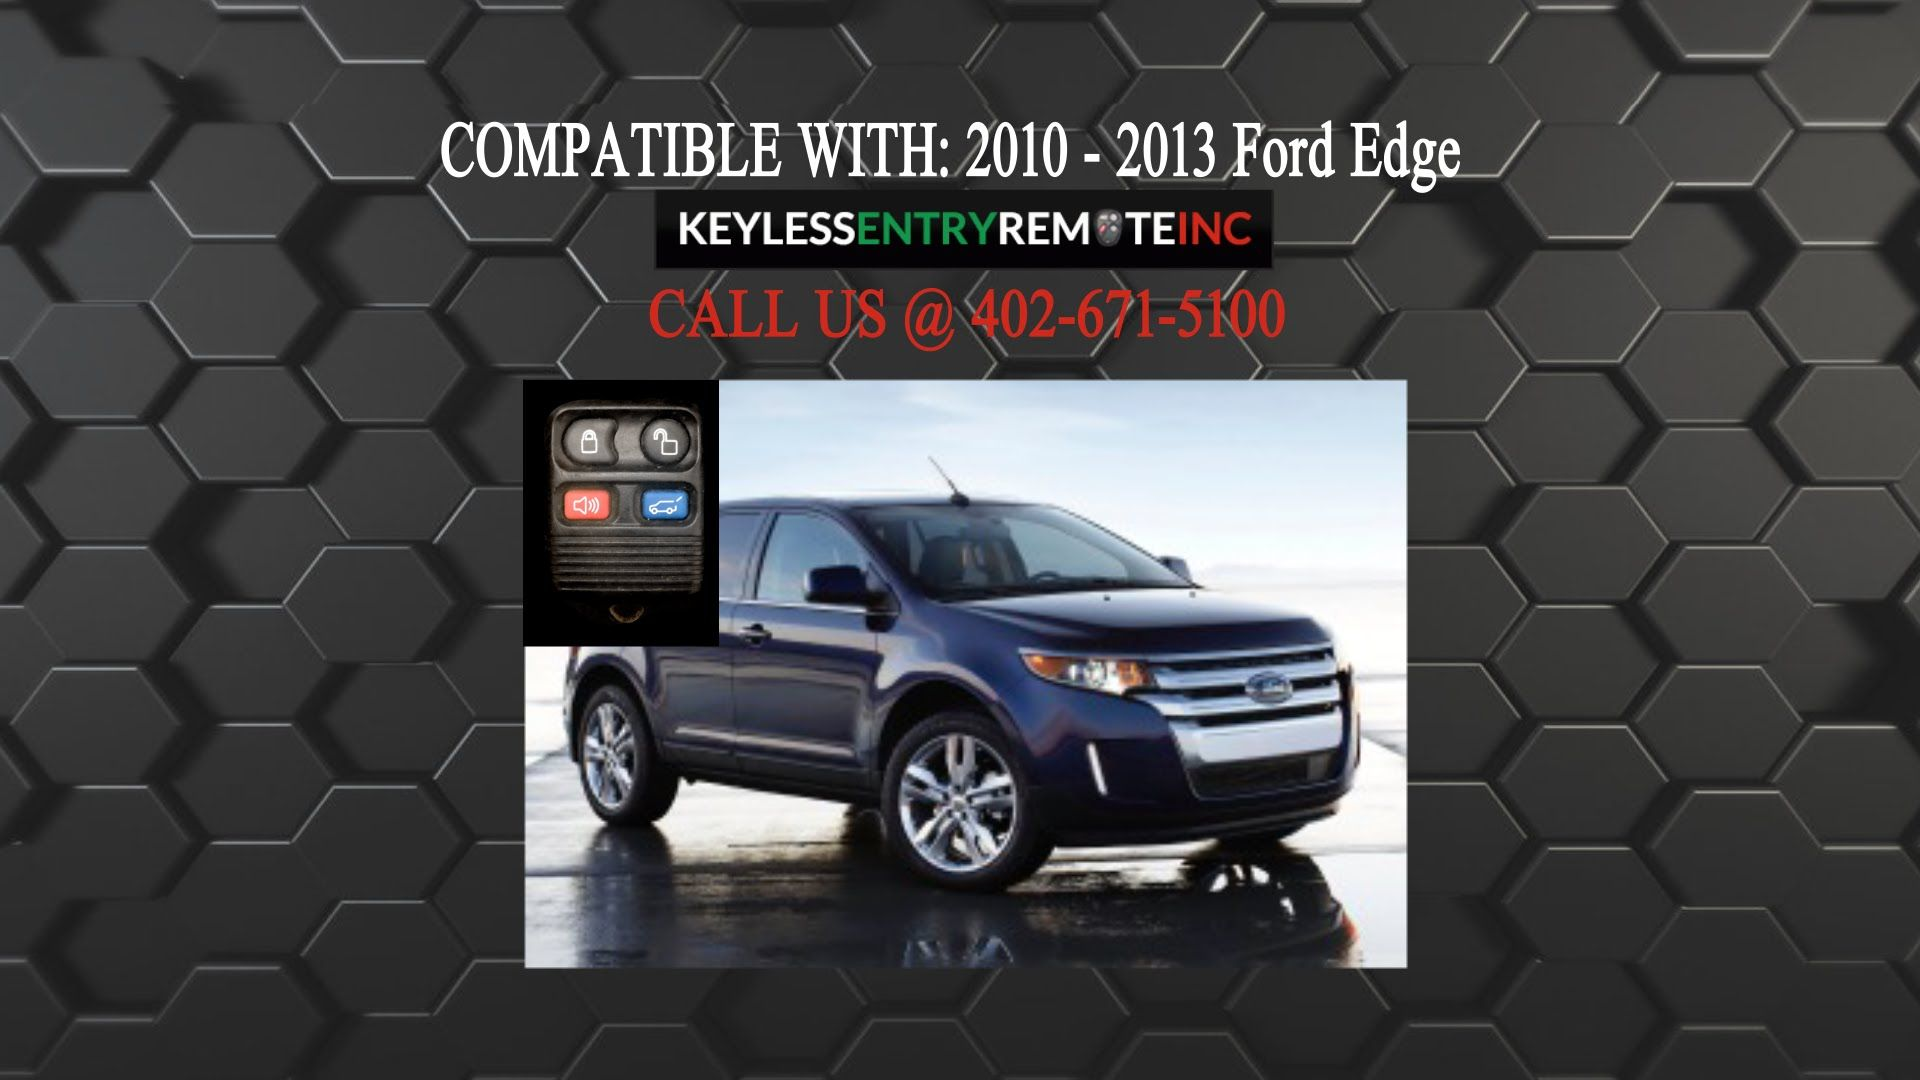 How To Replace Ford Edge Key Fob Battery 2007 2014 Ford Edge